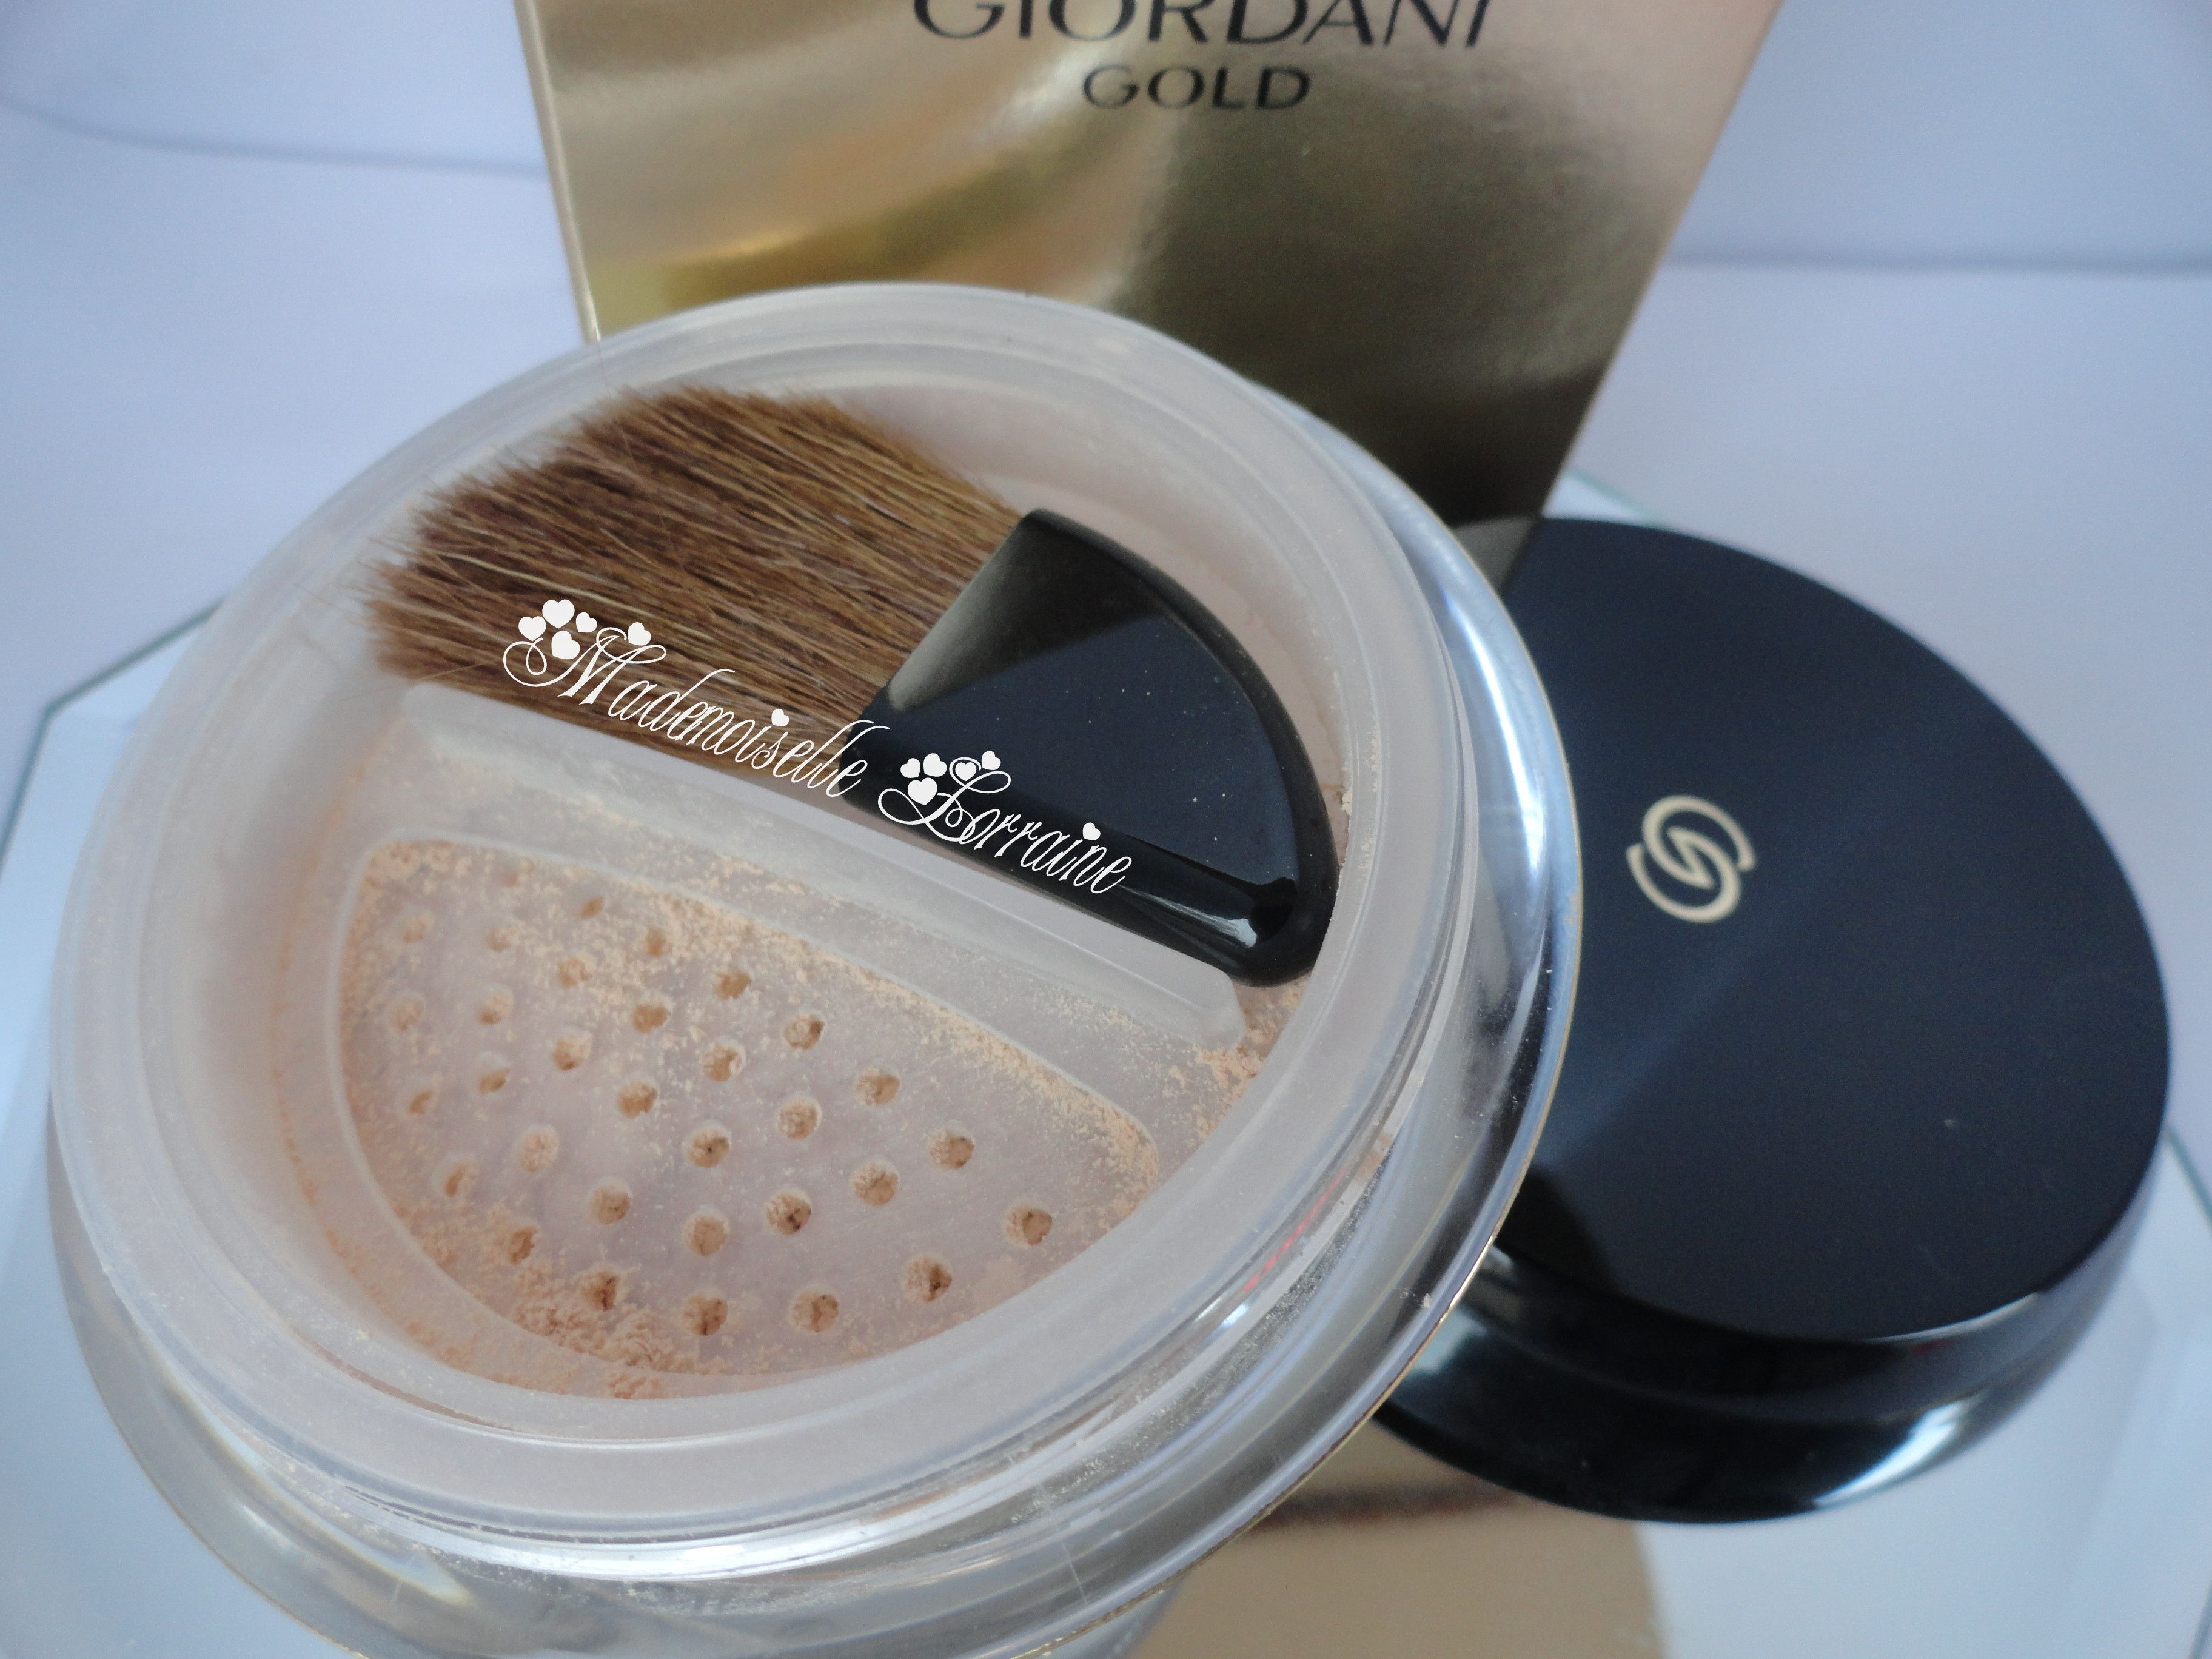 Review: Giordani Gold Invisible Touch Loose Powder